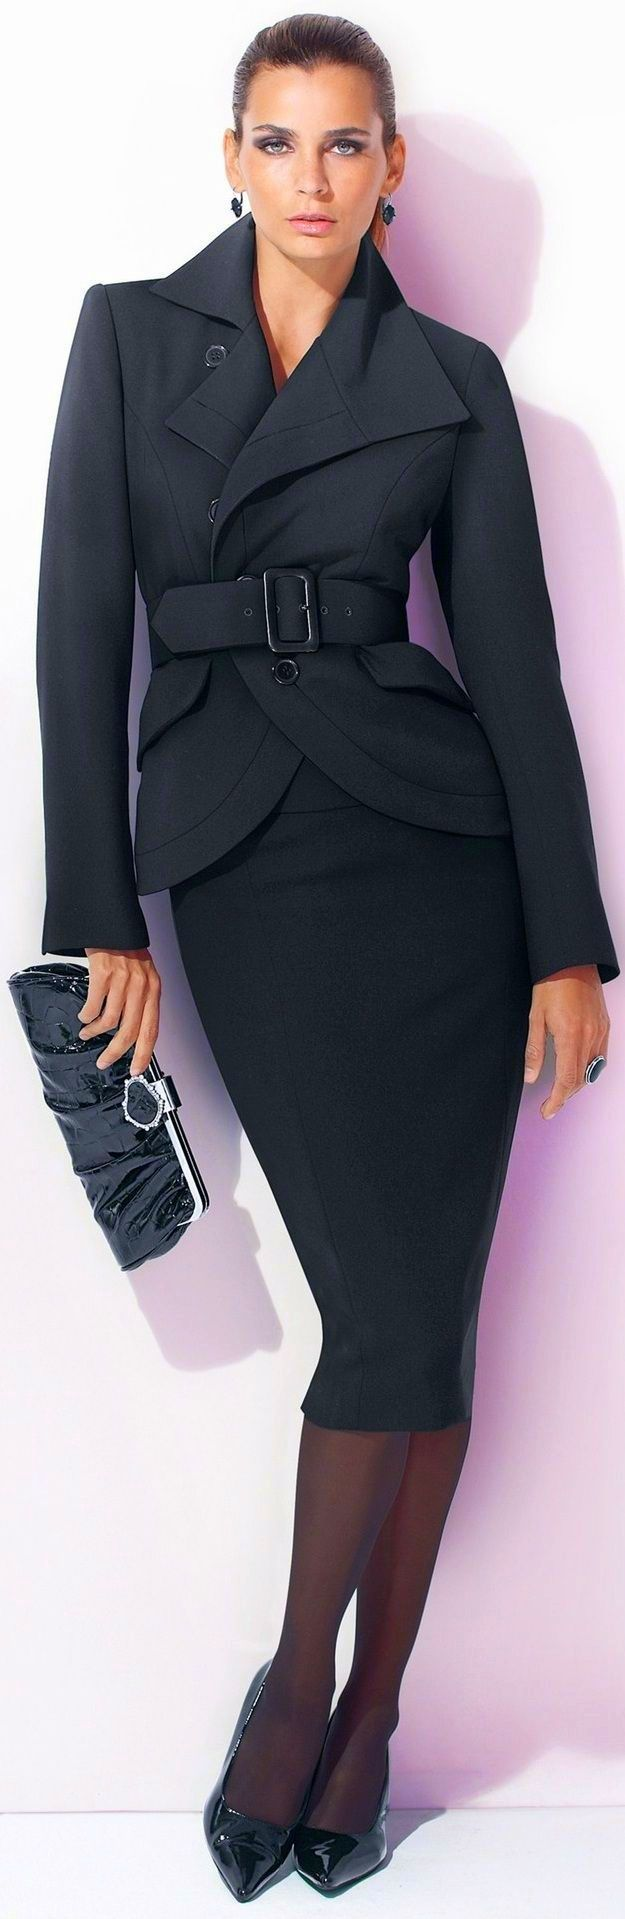 black suit for women